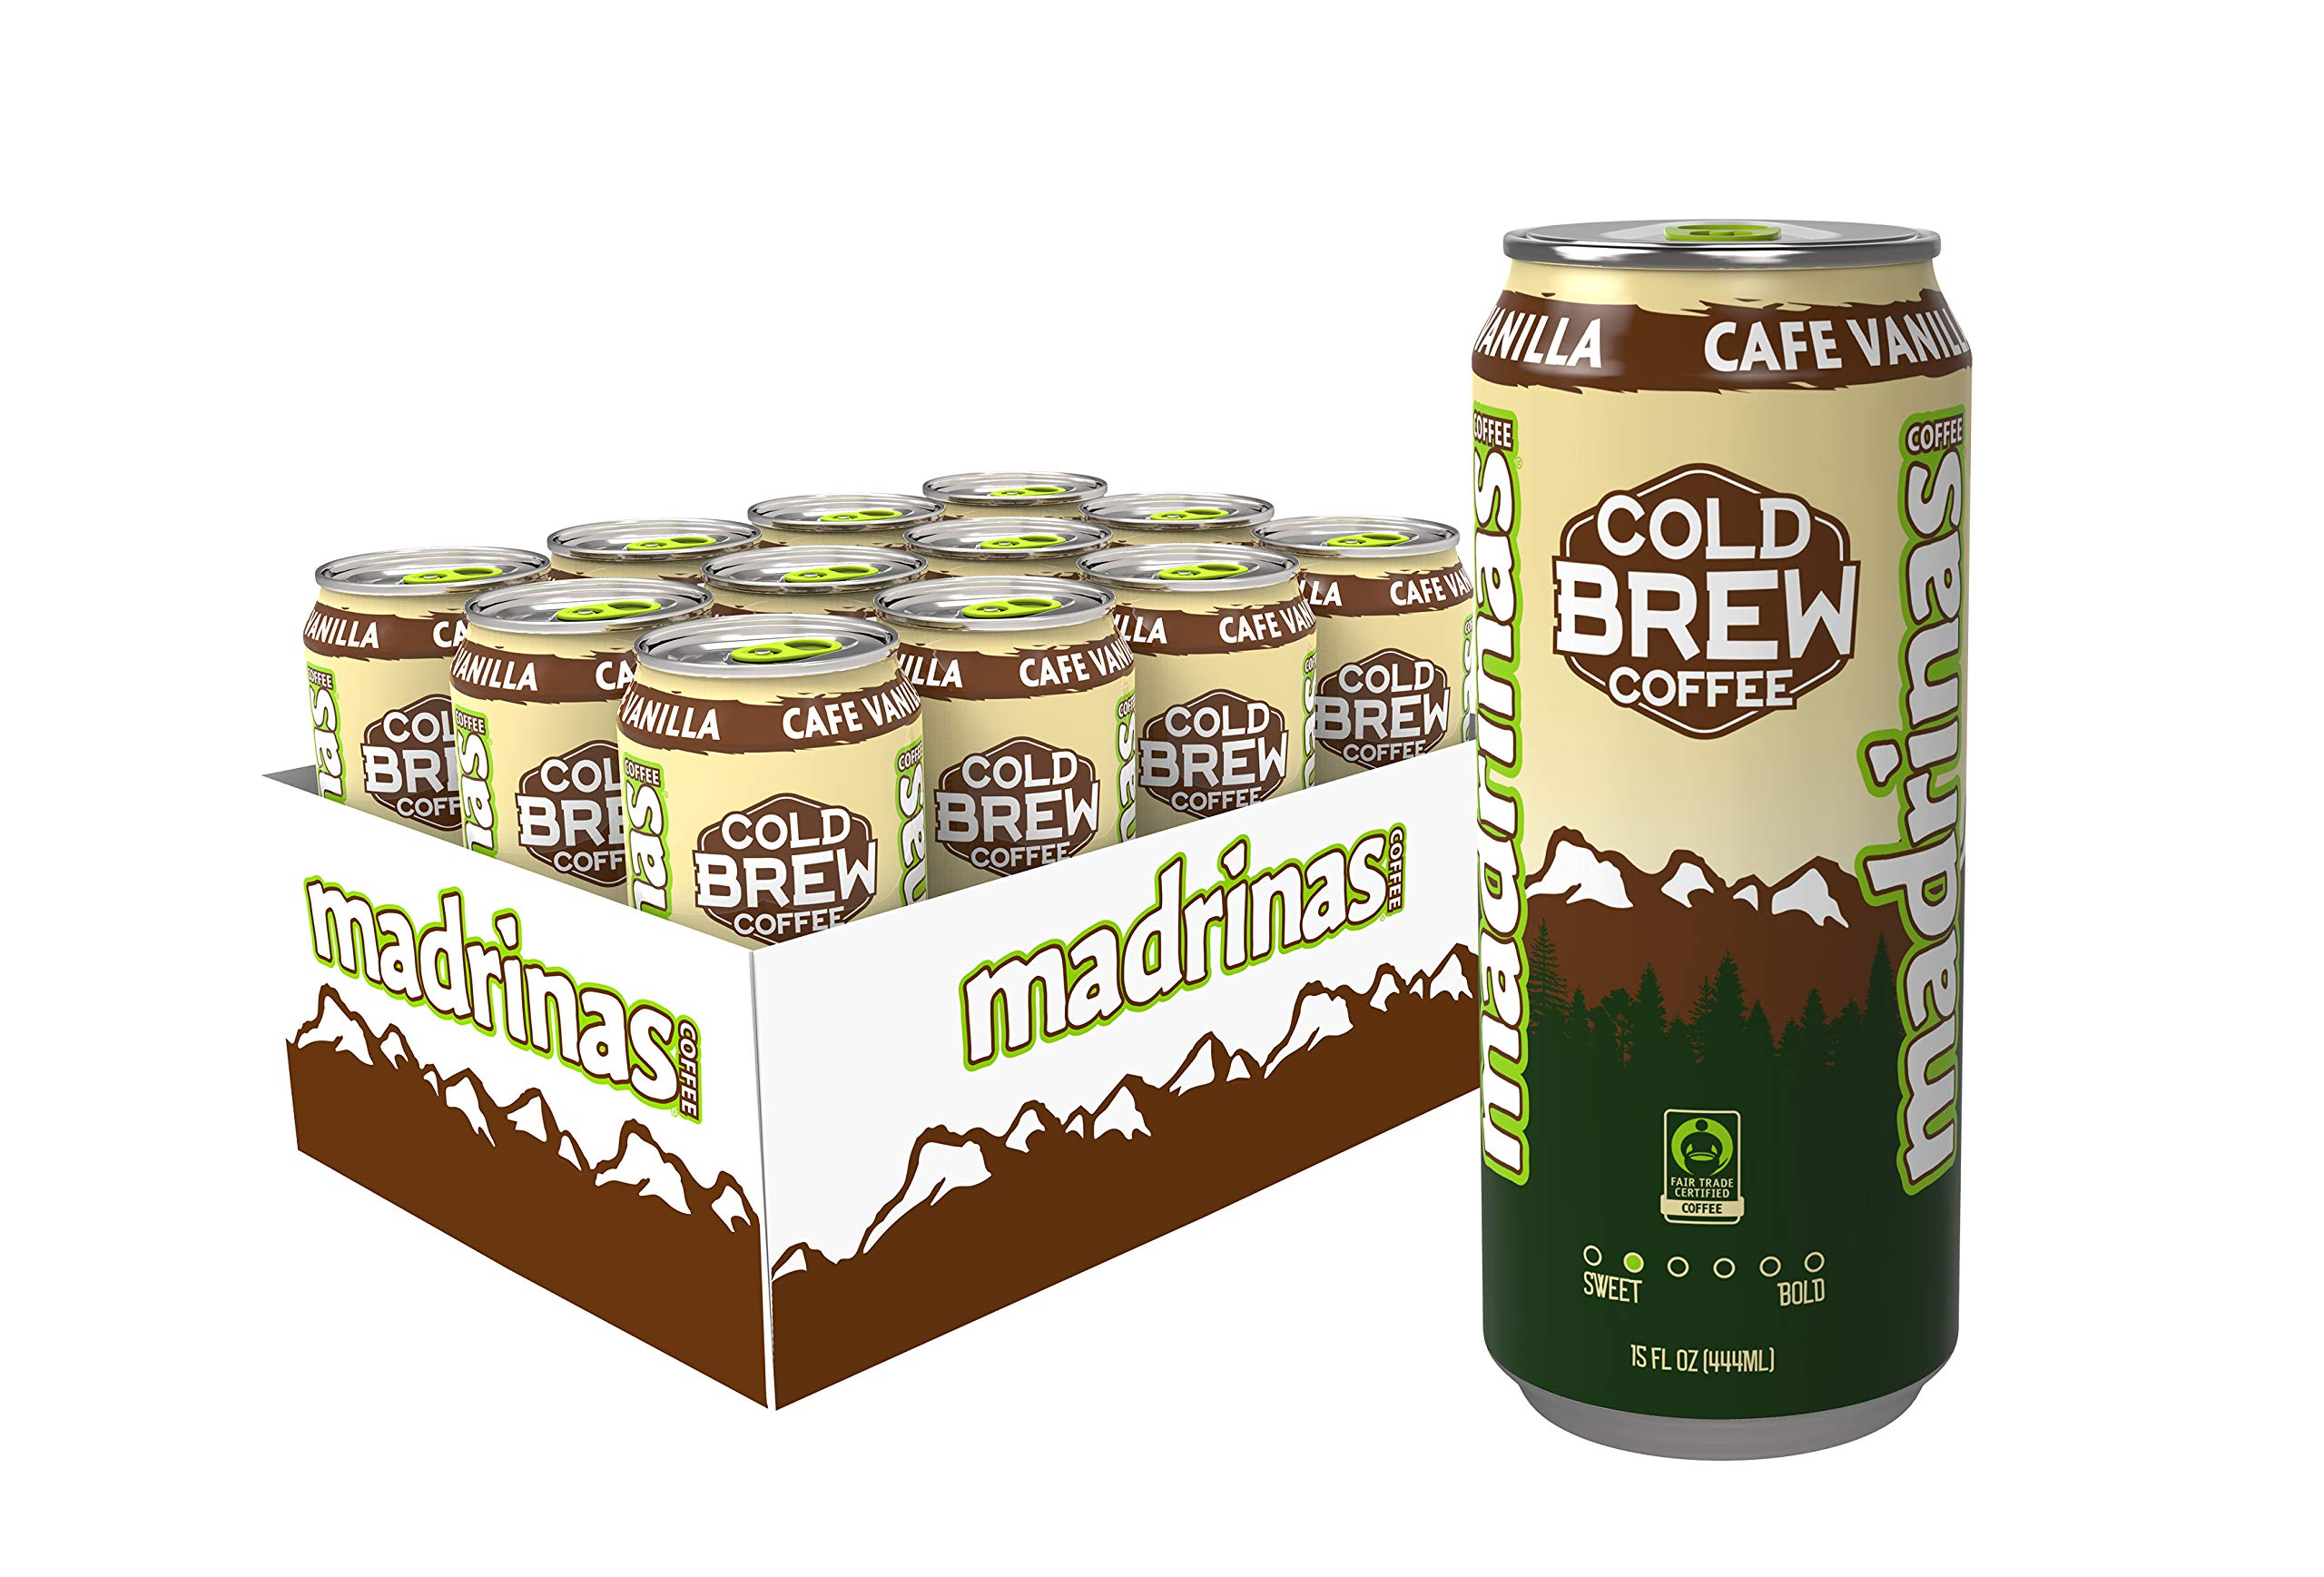 Madrinas Cafe Vanilla Fair Trade Cold Brew Coffee, 15 Fl Oz (Pack of 12)